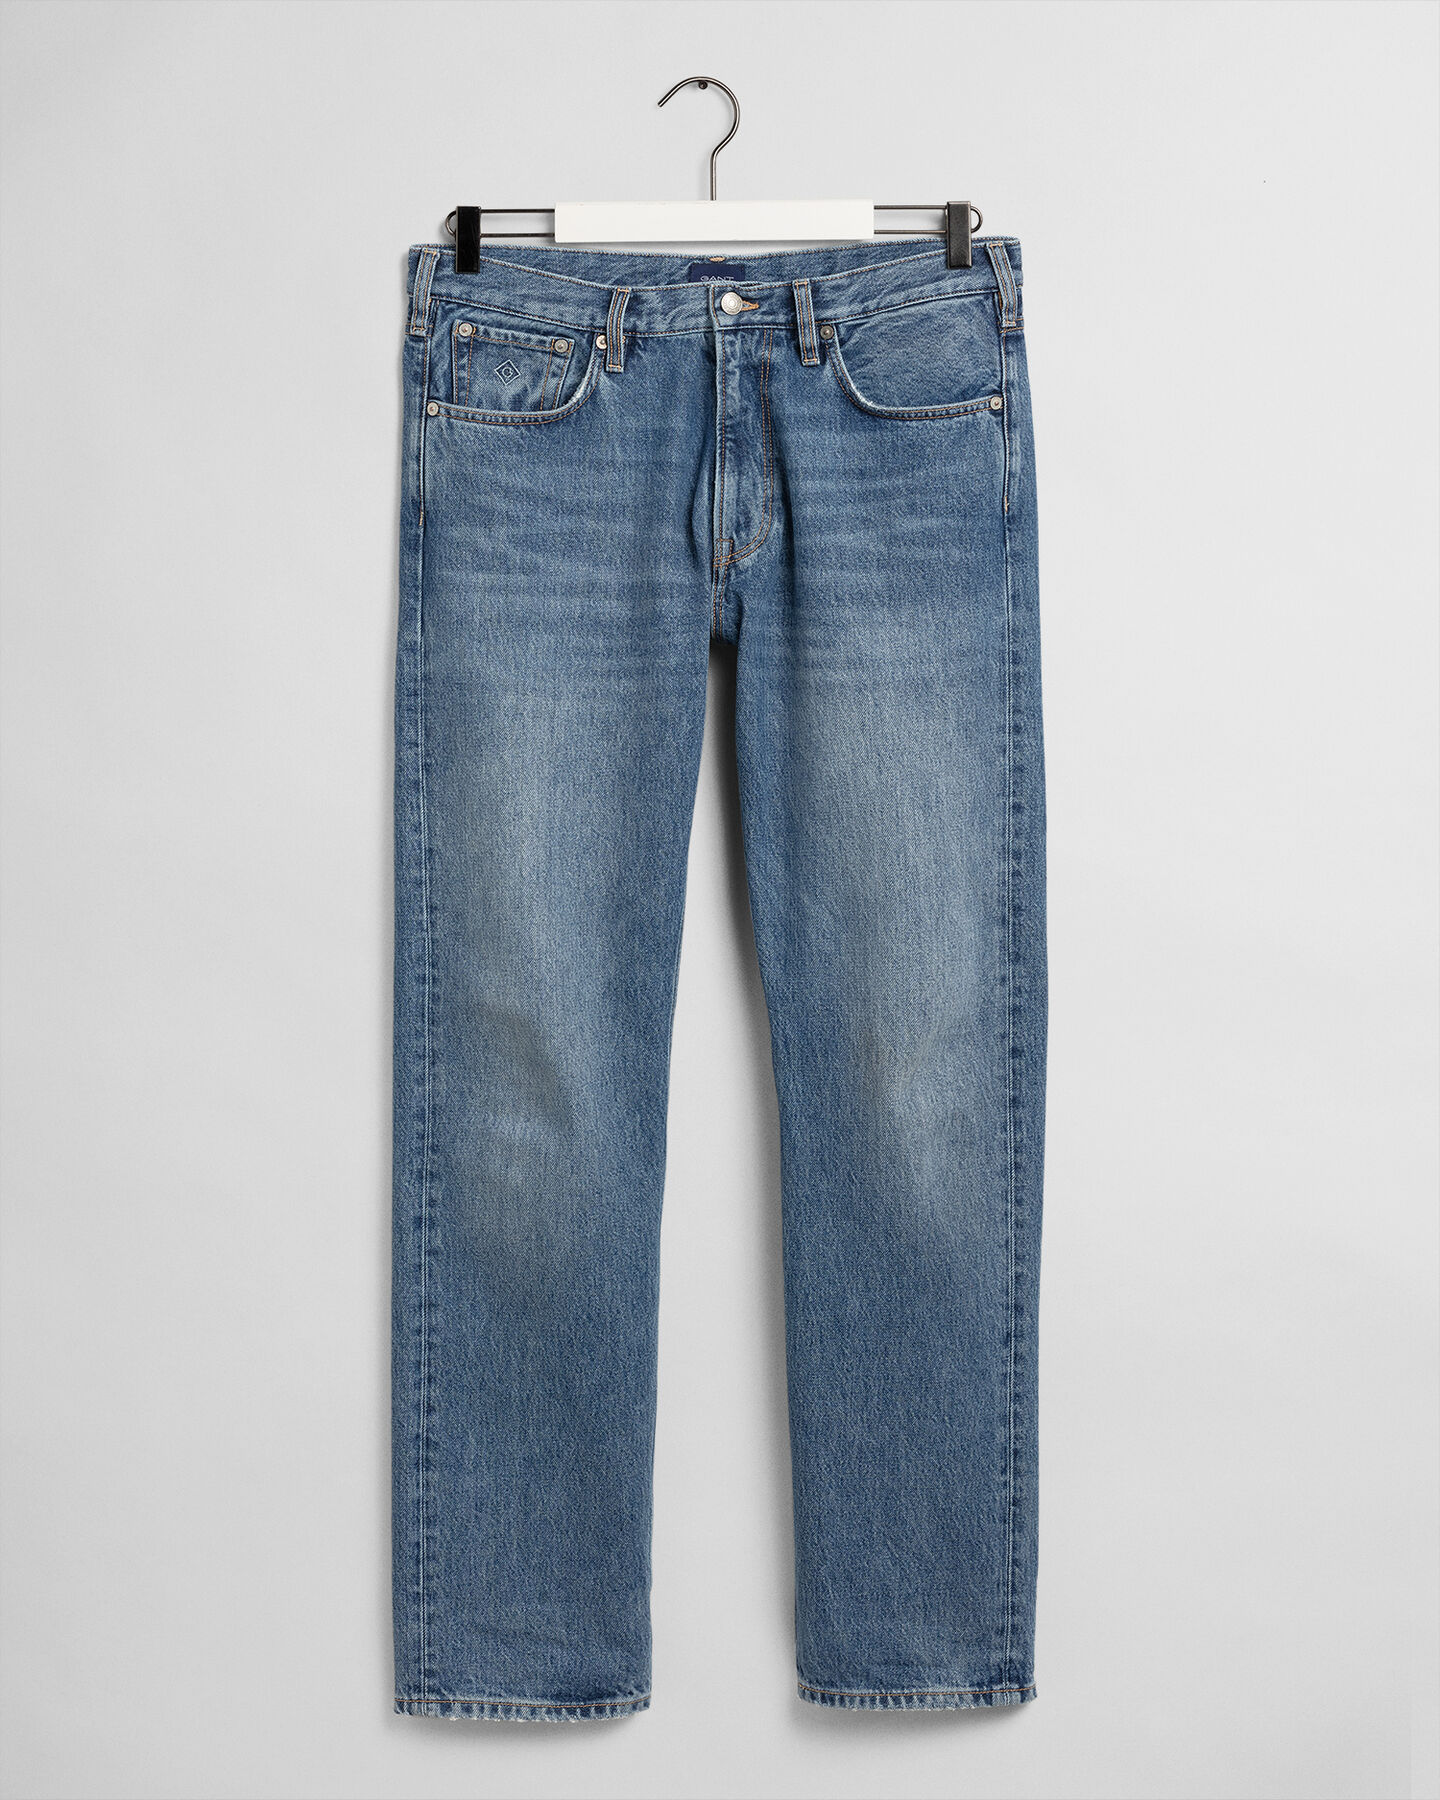 Classic Authentic Jeans